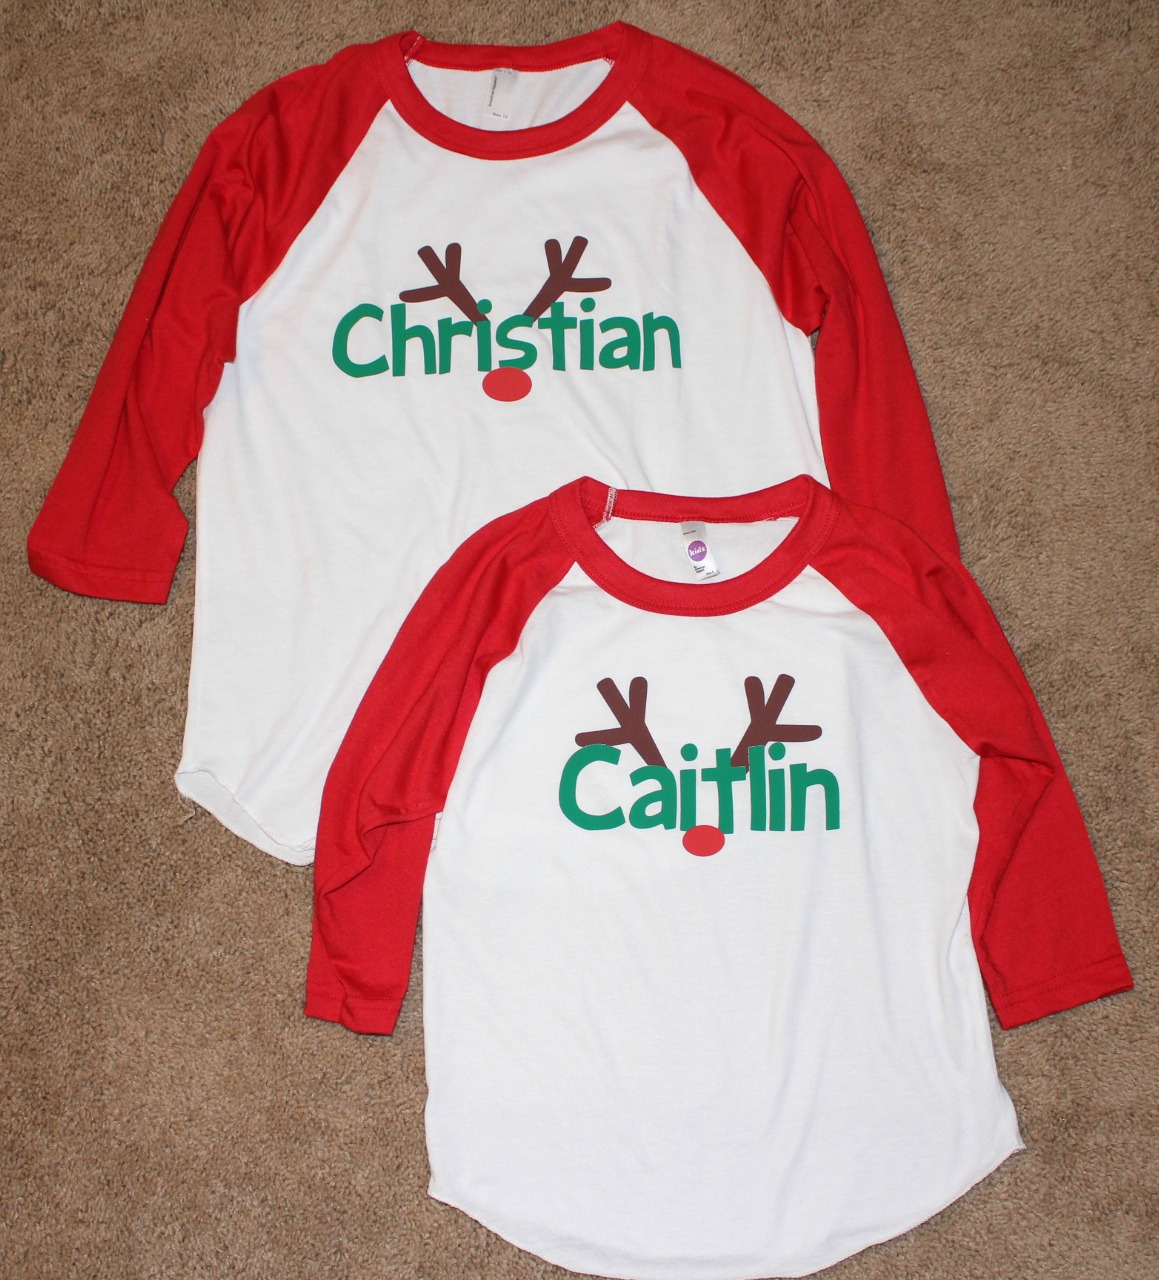 Kids Christmas Shirts.The Story Of Three Personalized Kids Christmas Shirts From